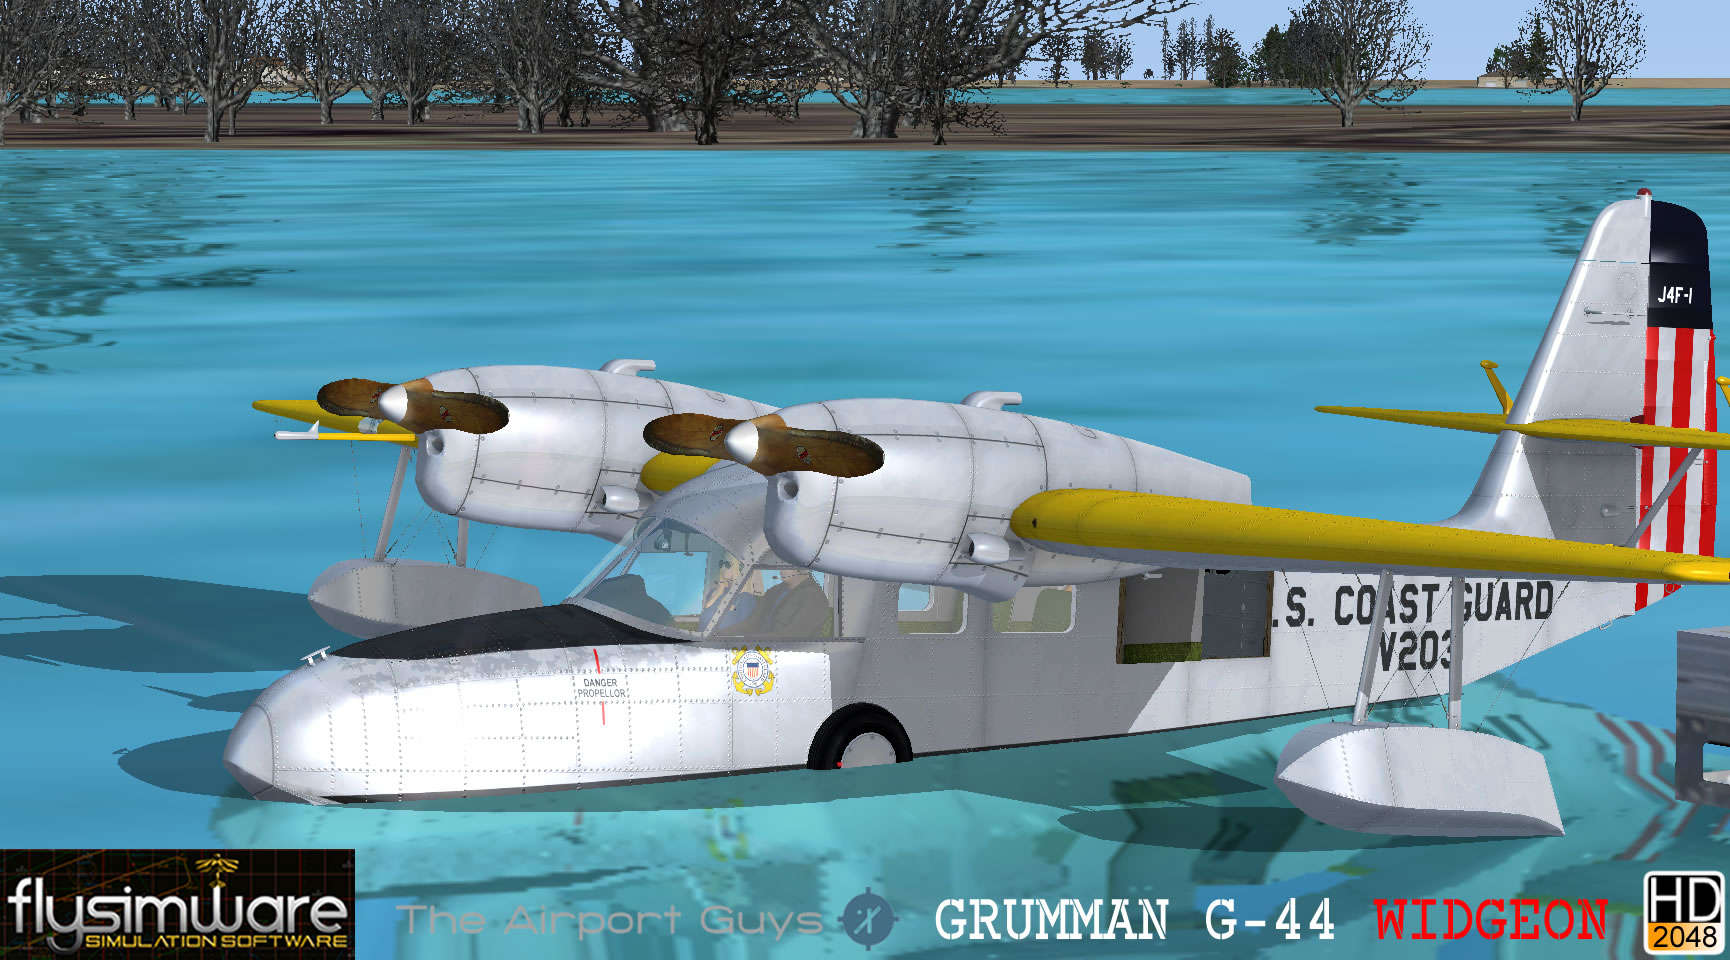 Just Flight - Flysimware Grumman G-44A Widgeon